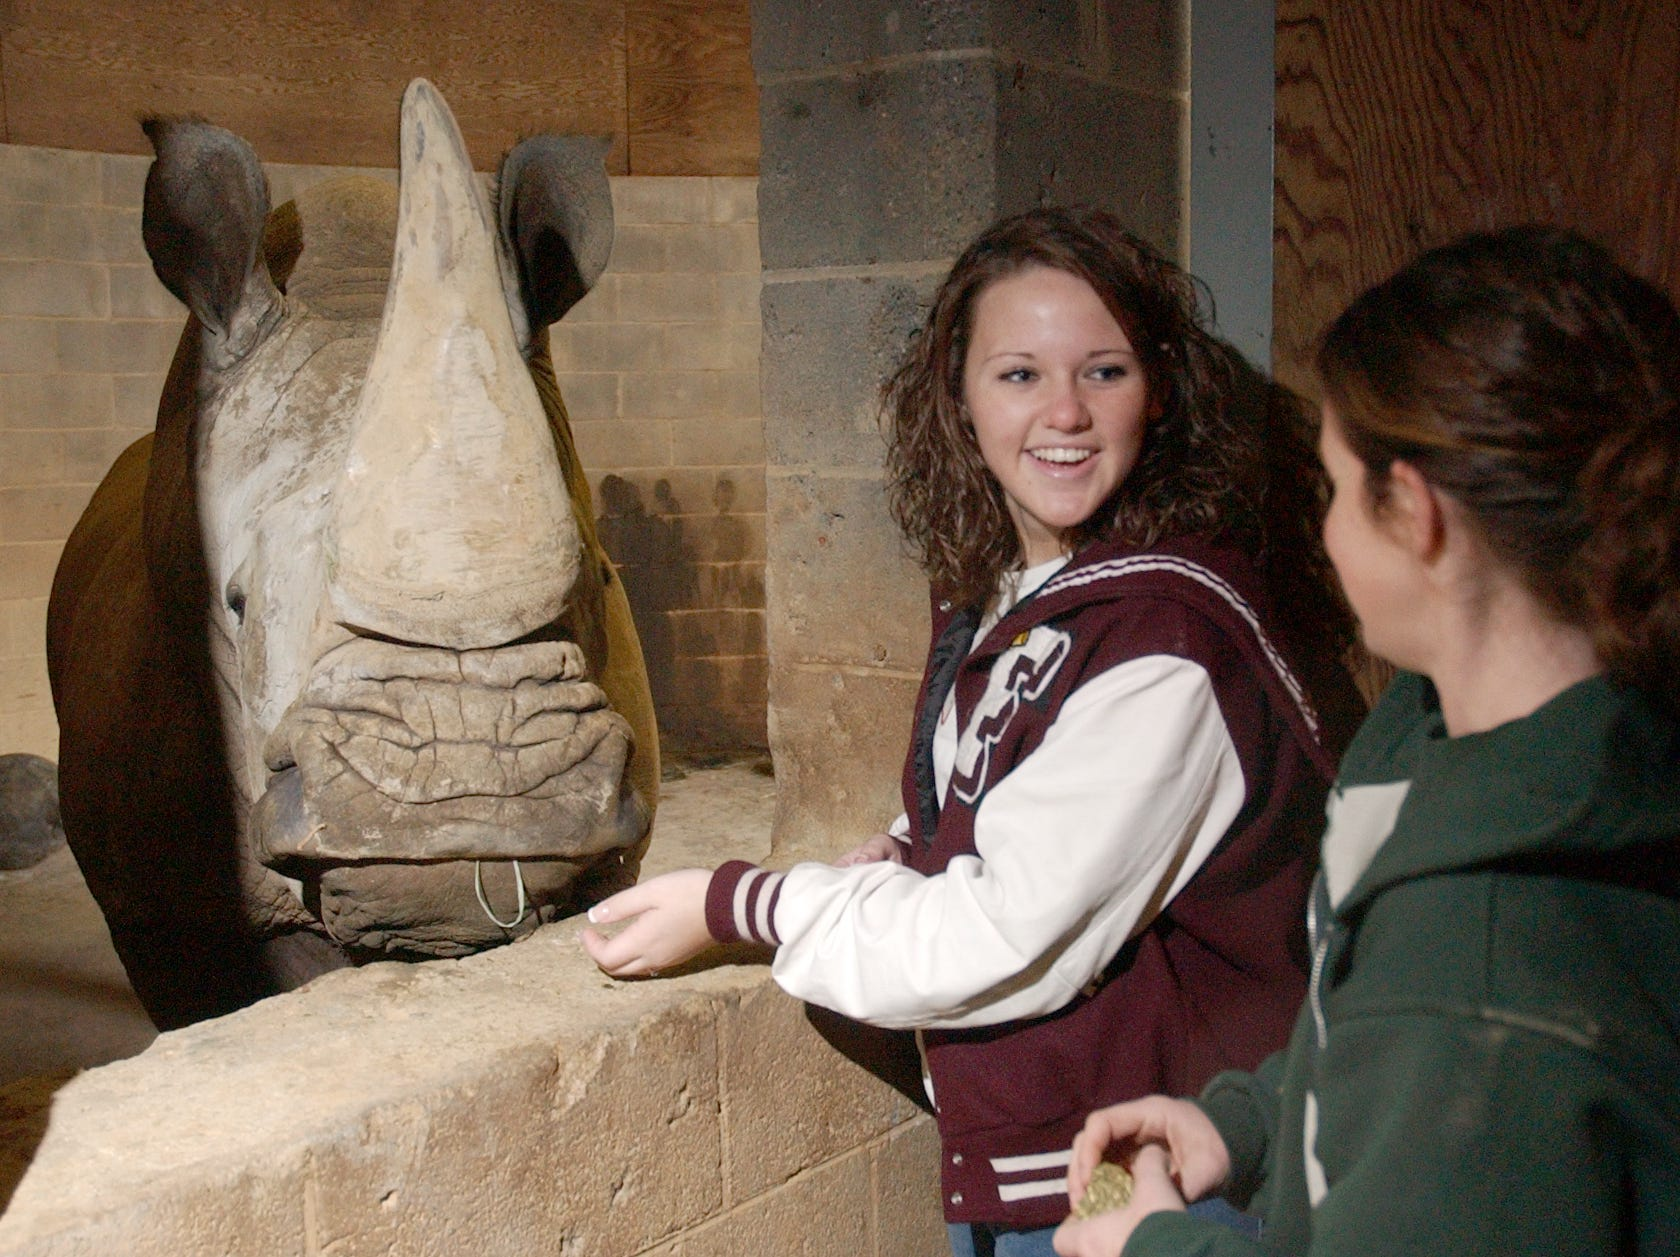 Lyndsey Harris, 16, a junior at Fulton High School, left, hand feeds alfalfa cubes to Mondo, a 5,000 pound Southern white rhino at the Knoxville Zoo as lead rhino keeper Amy Flew looks on Wednesday. Harris was job shadowing Flew. 2005.